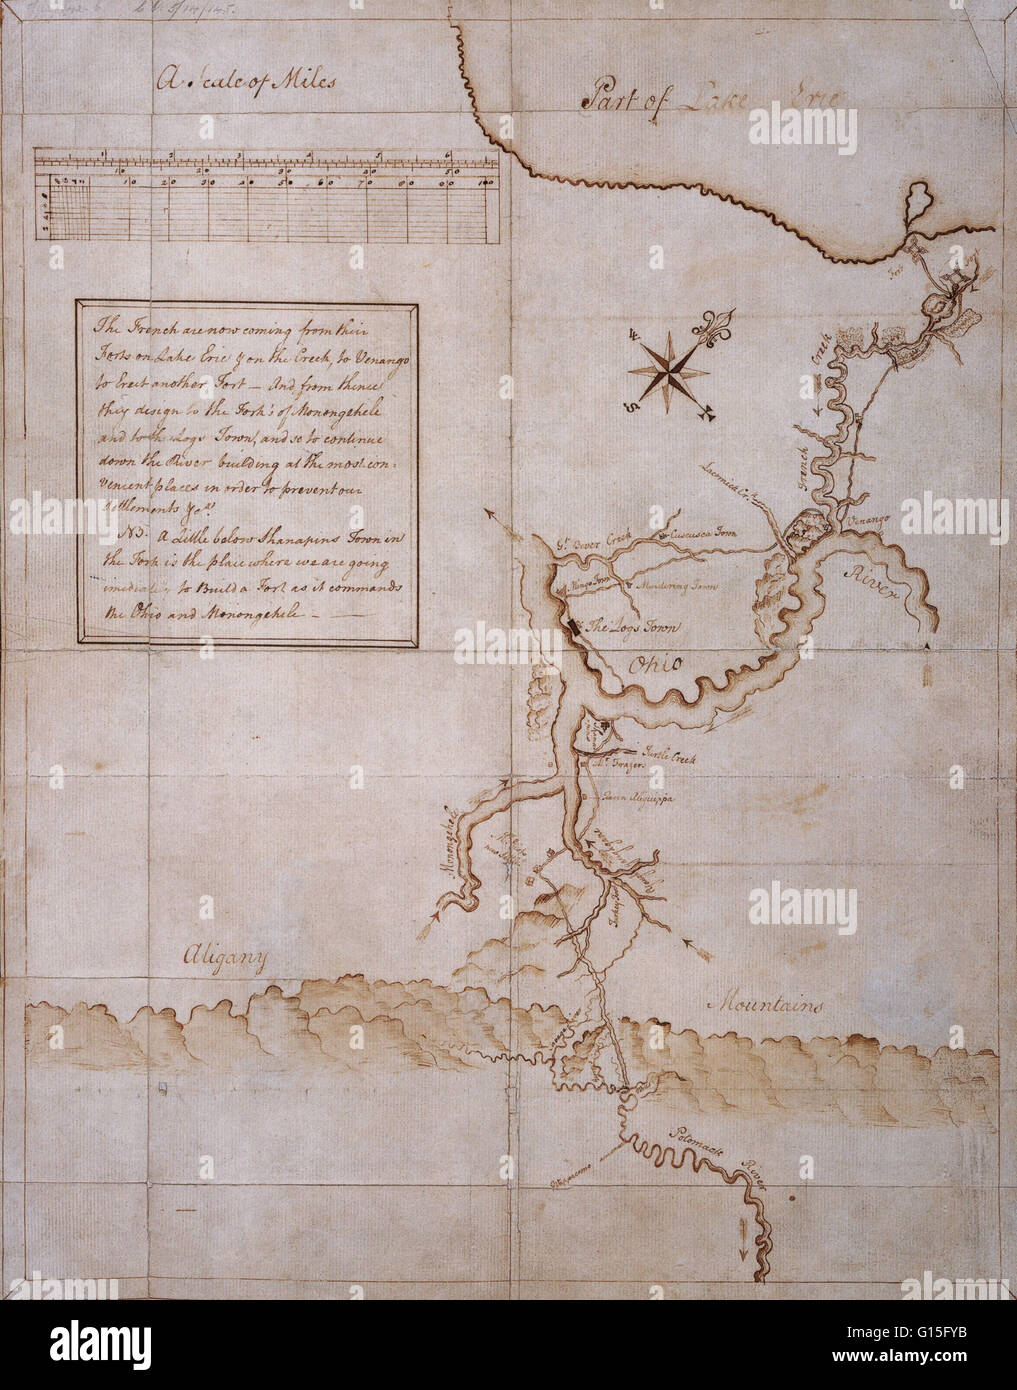 Manuscript map drawn by George Washington during the campaign of 1753-54. - Stock Image